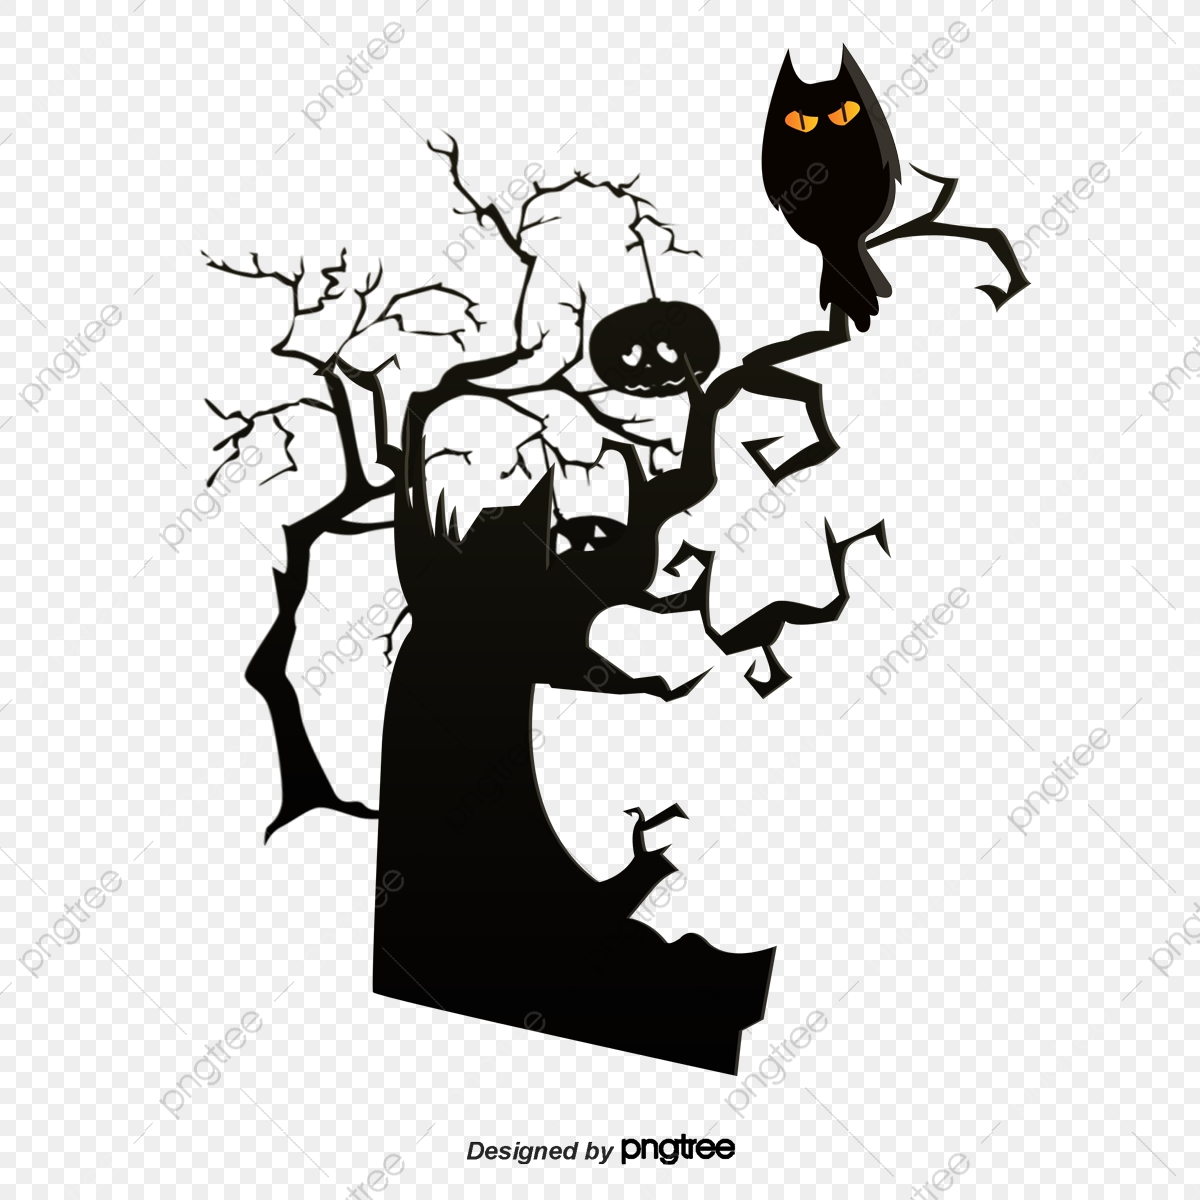 A Bat Is Hanging Above The Horror Tree Bat Clipart Halloween Qingming Festival Png Transparent Clipart Image And Psd File For Free Download Are you curious about drawing a christmas tree? https pngtree com freepng a bat is hanging above the horror tree 4840929 html